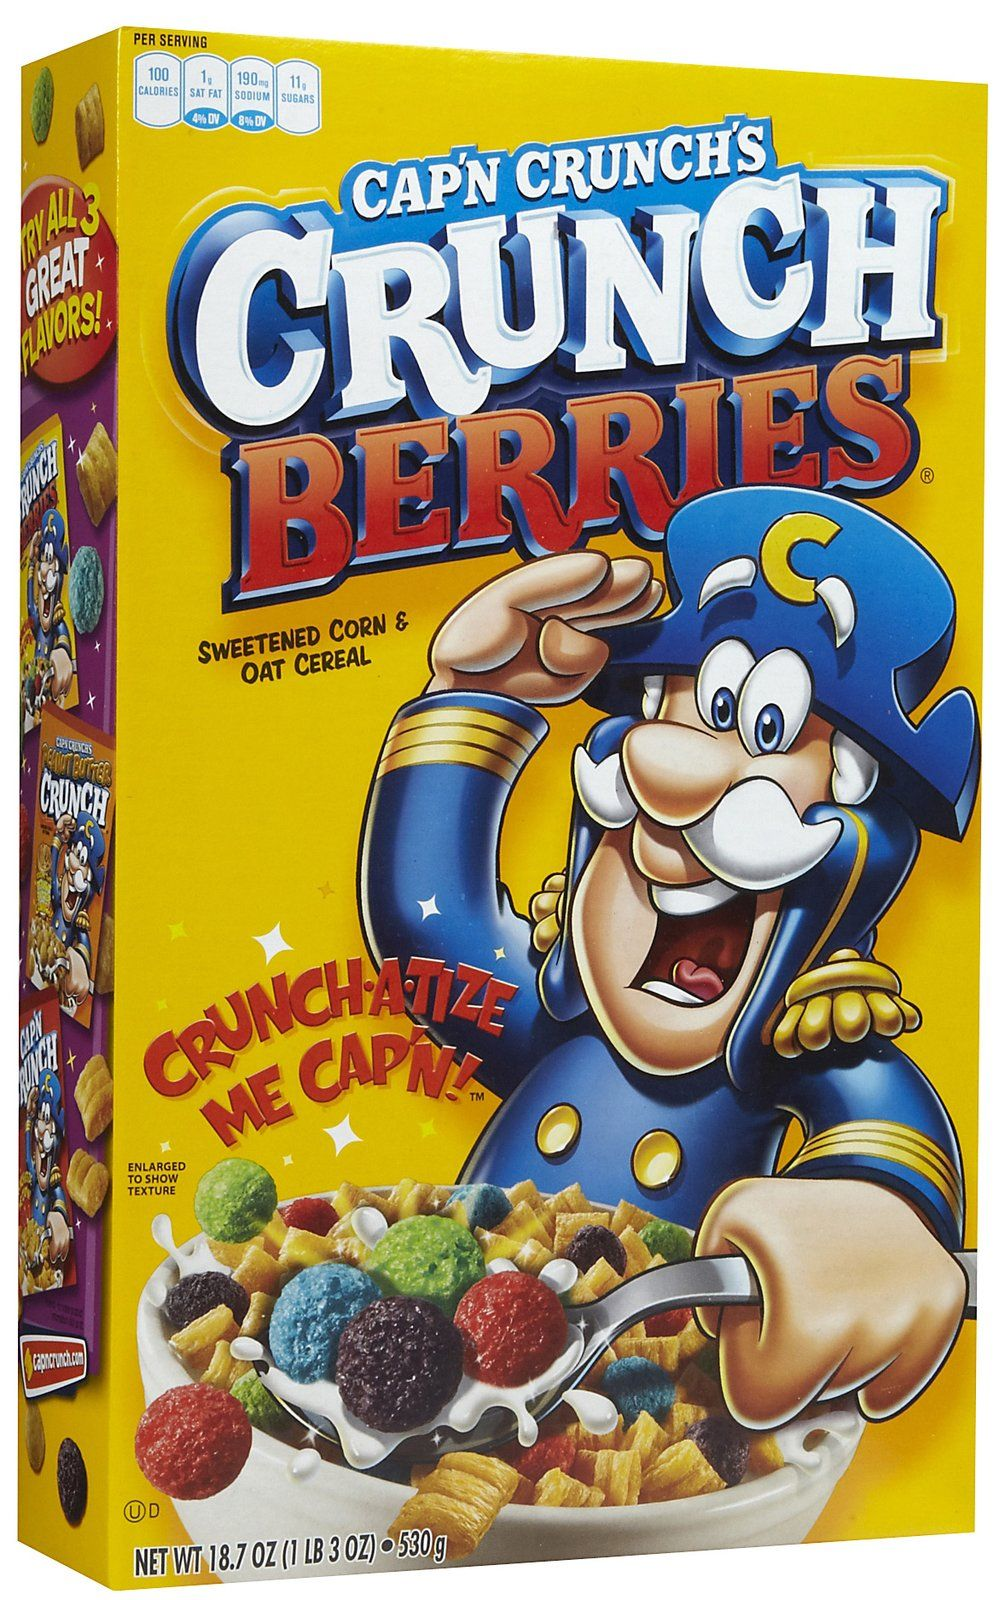 6. Cap'N Crunch To Satisfy His Hunger